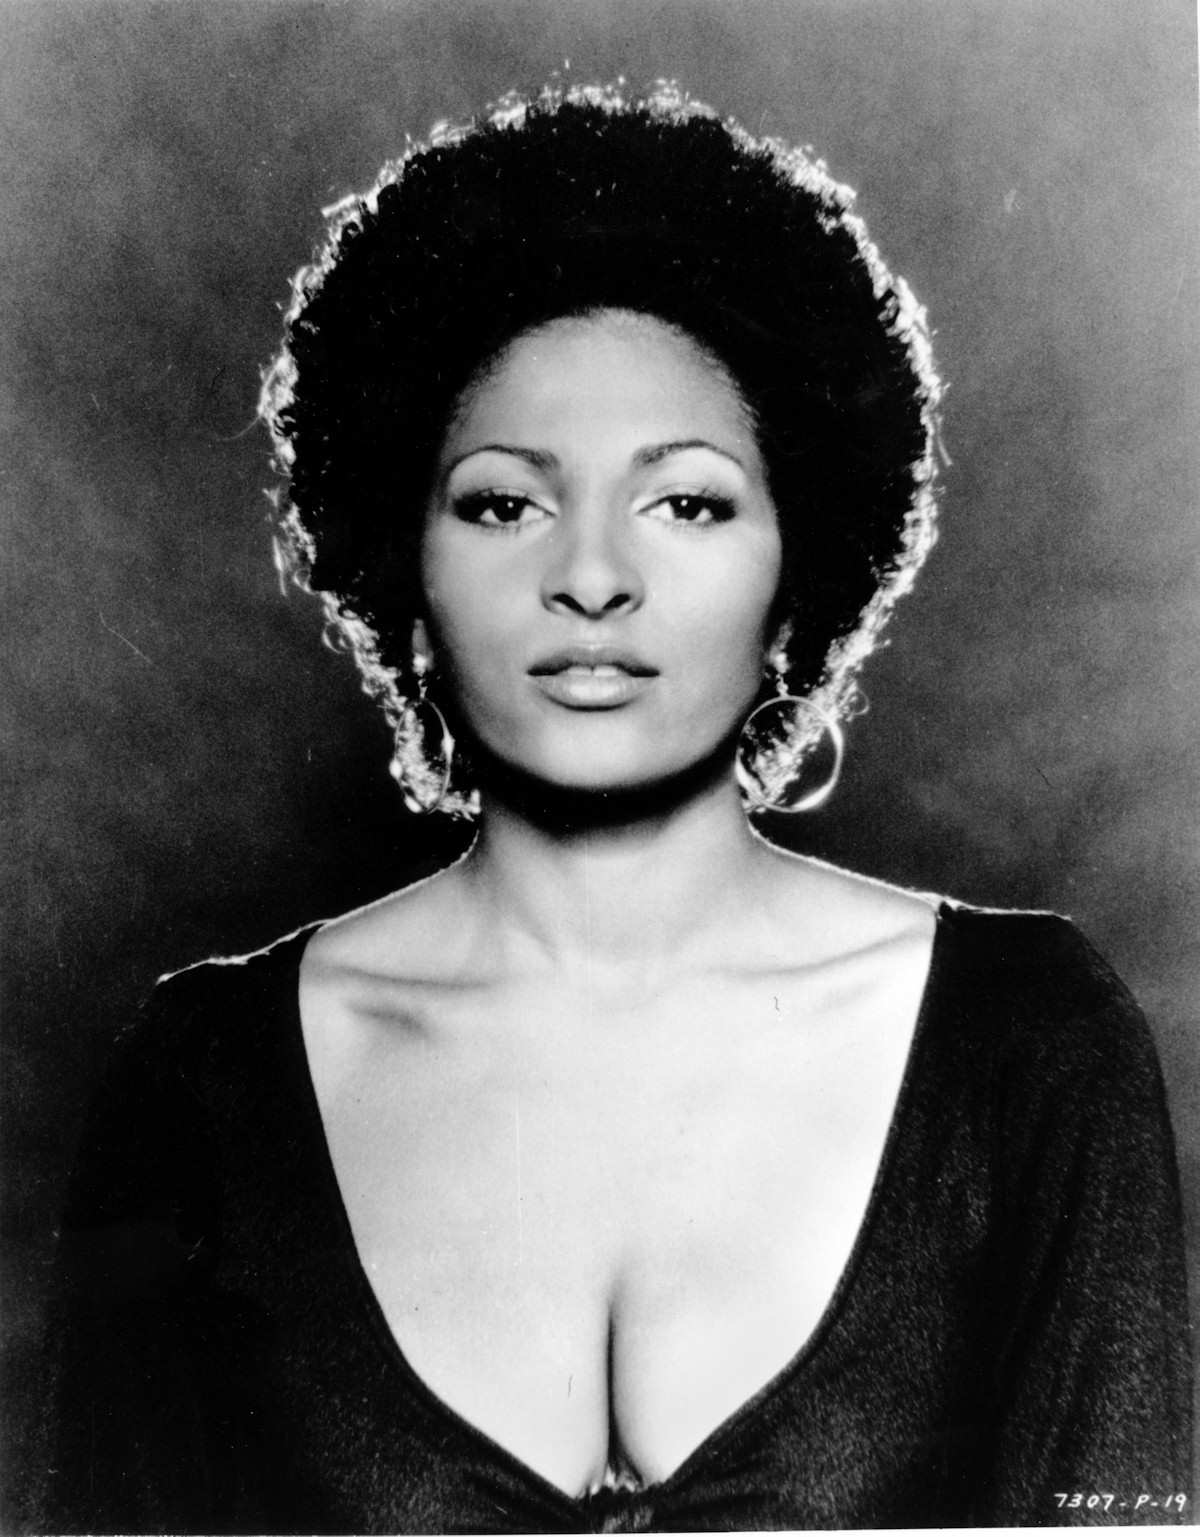 Pam grier photo gallery congratulate, what